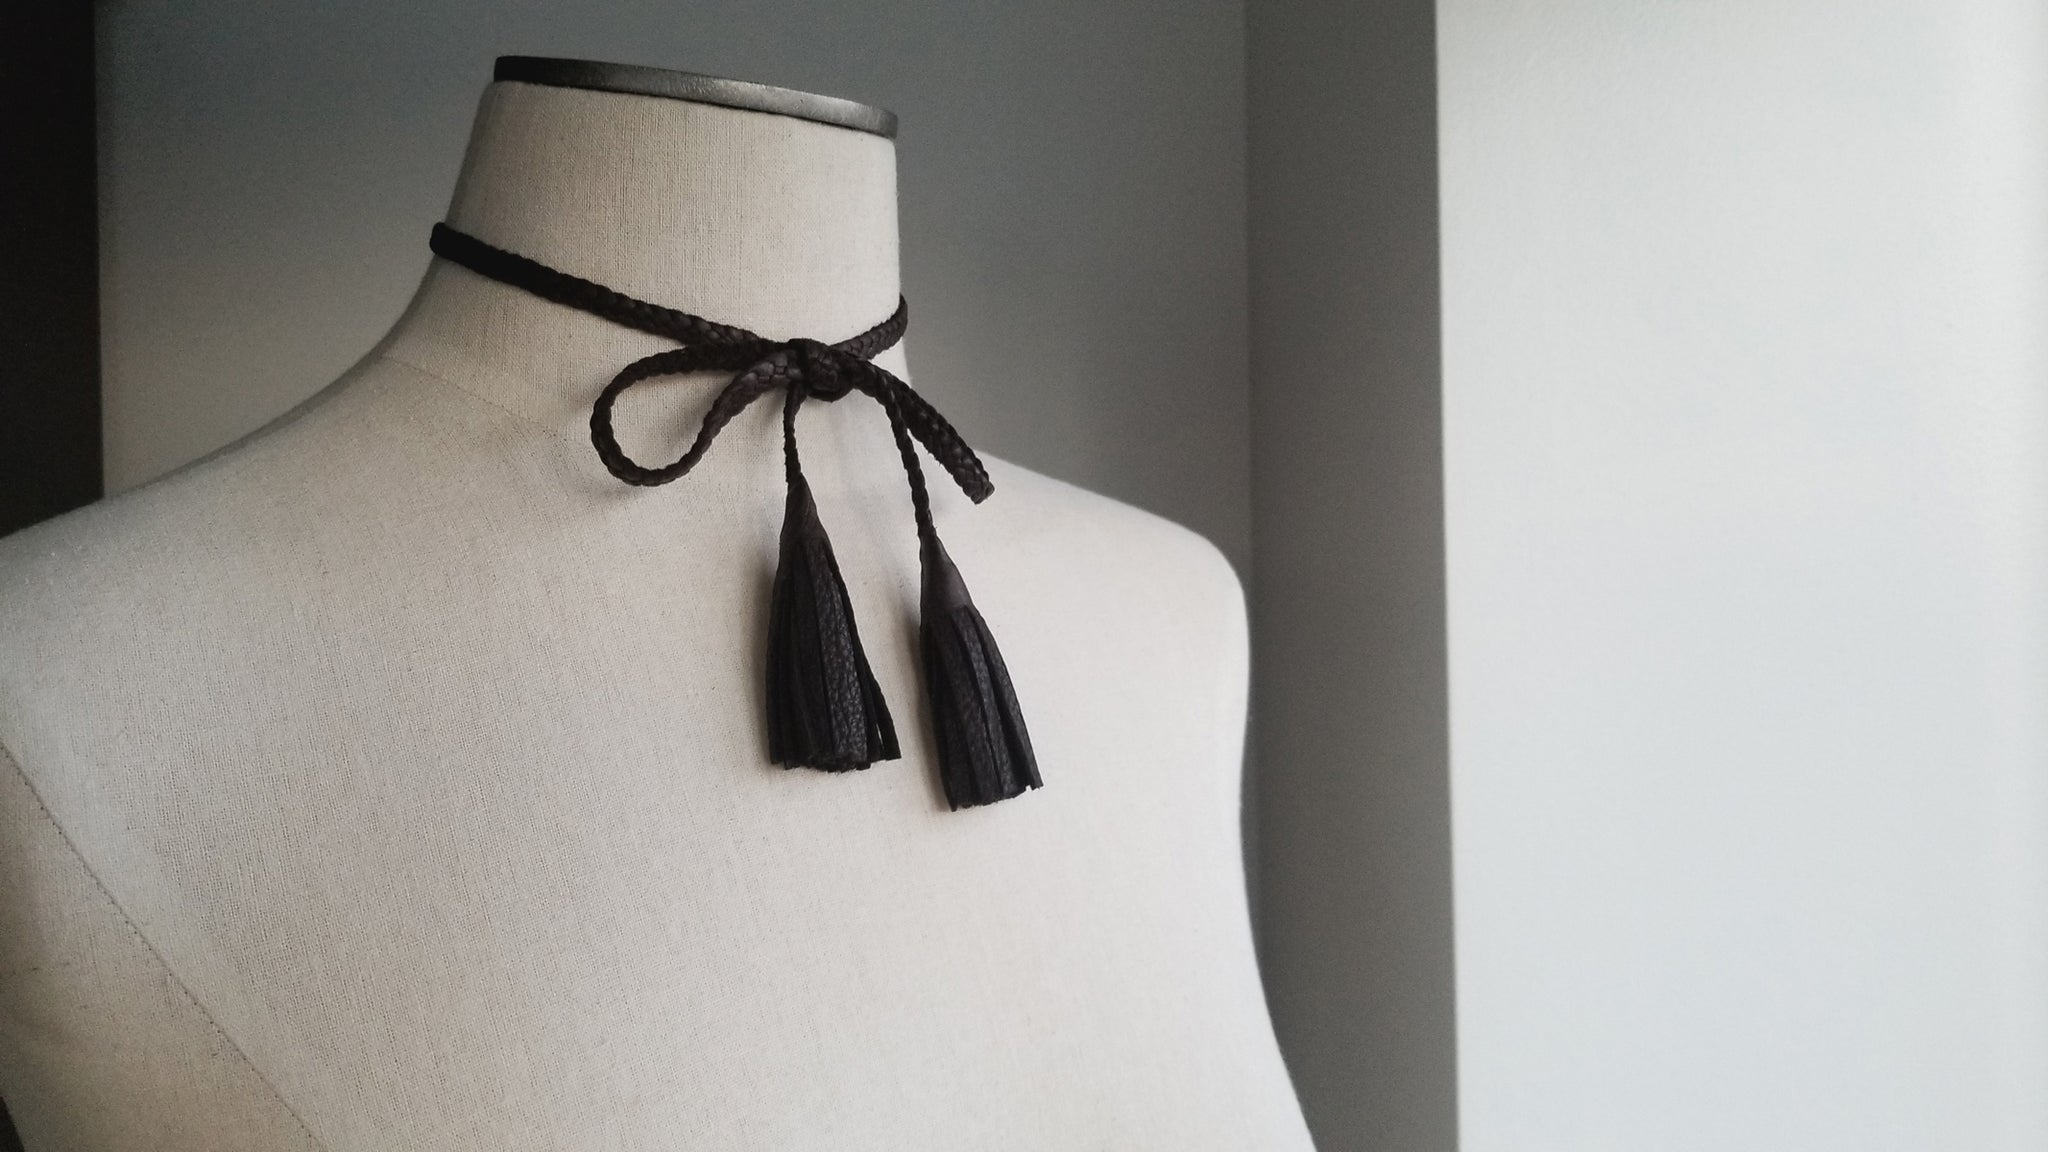 Dua Braided Leather Tassel Necklace, bow and tassels, in chocolate brown deerskin leather